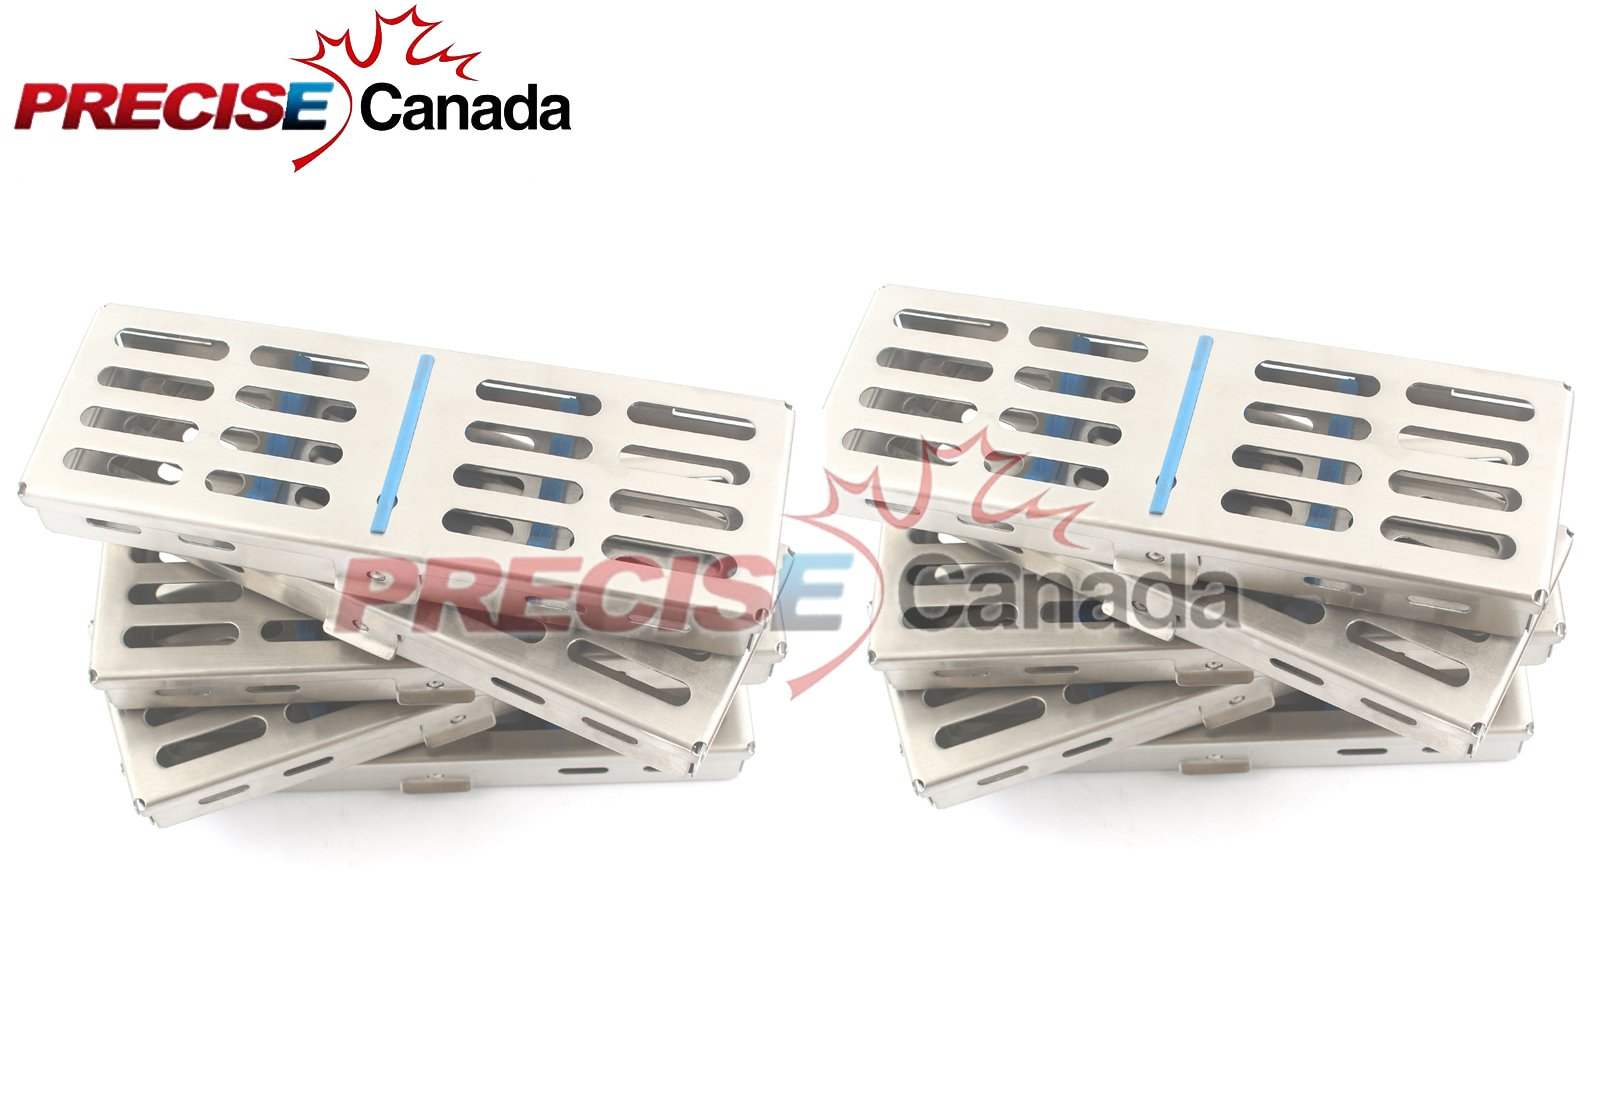 PRECISE CANADA: NEW SET OF 10 EACH GERMAN GRADE DENTAL AUTOCLAVE STERILIZATION CASSETTE RACK BOX TRAY FOR 5 INSTRUMENT NEW